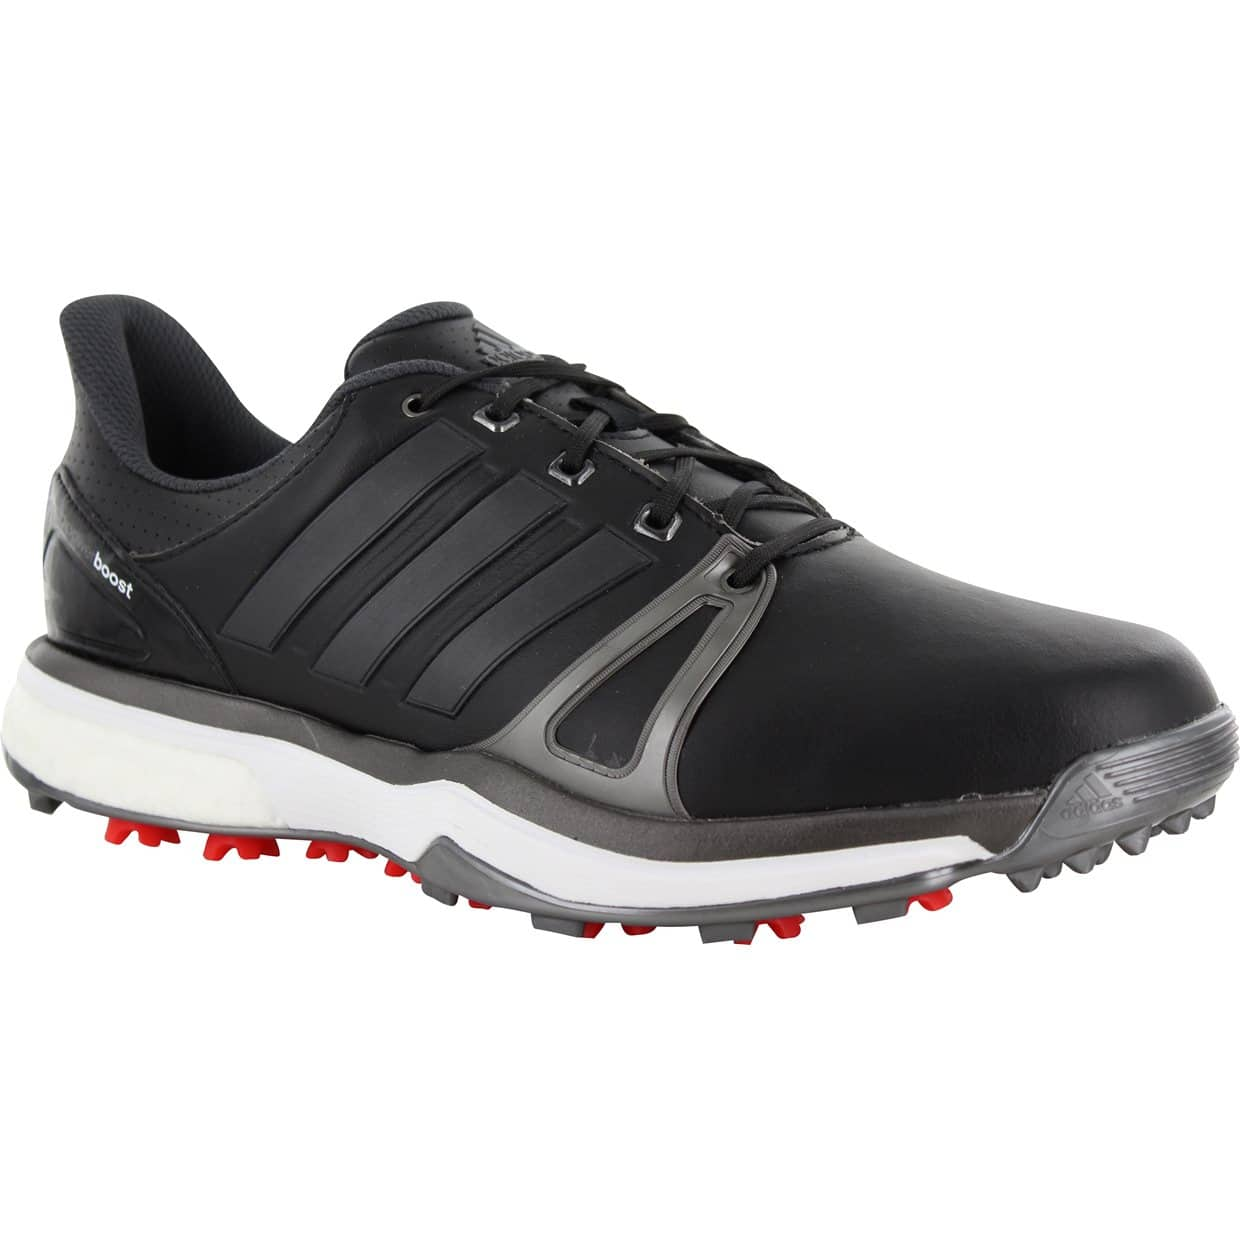 Adidas 2016 Adipower Boost 2 Mens Golf Shoe for $59.99 + Free Shipping